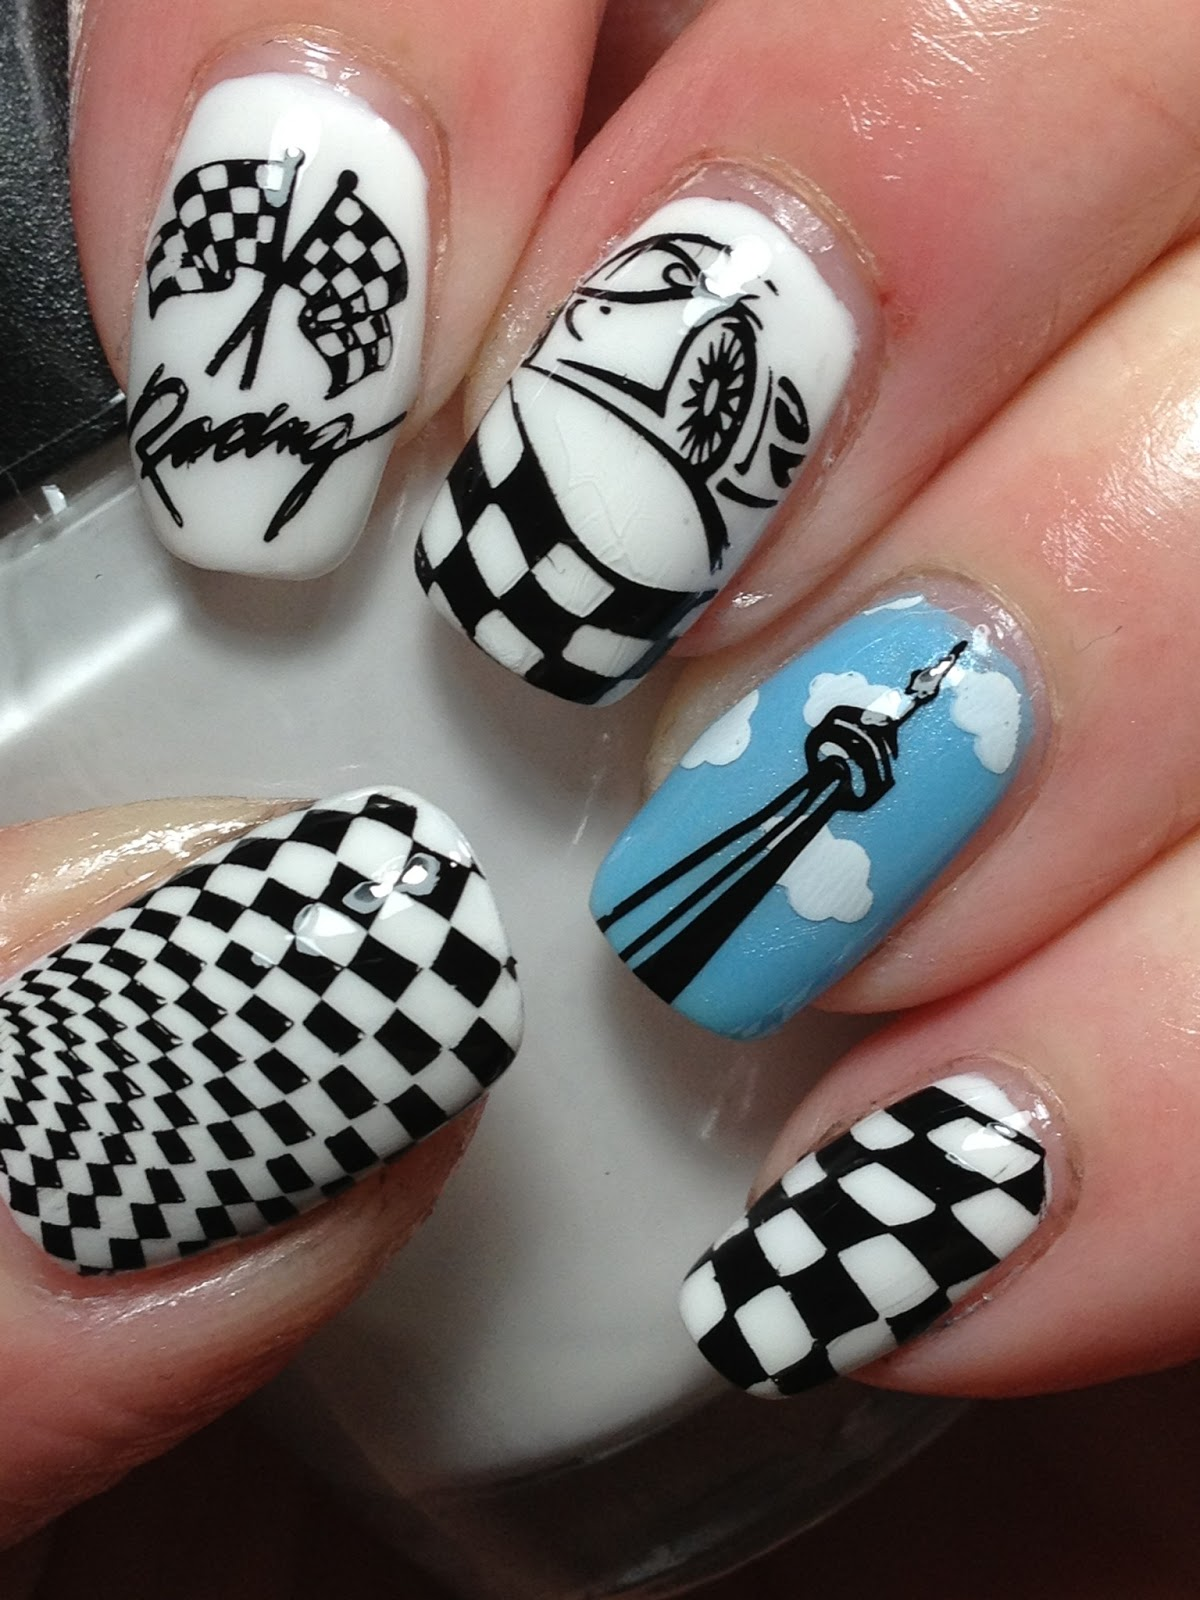 Indy 500 nailsus new plates nail art ideas prinsesfo Gallery